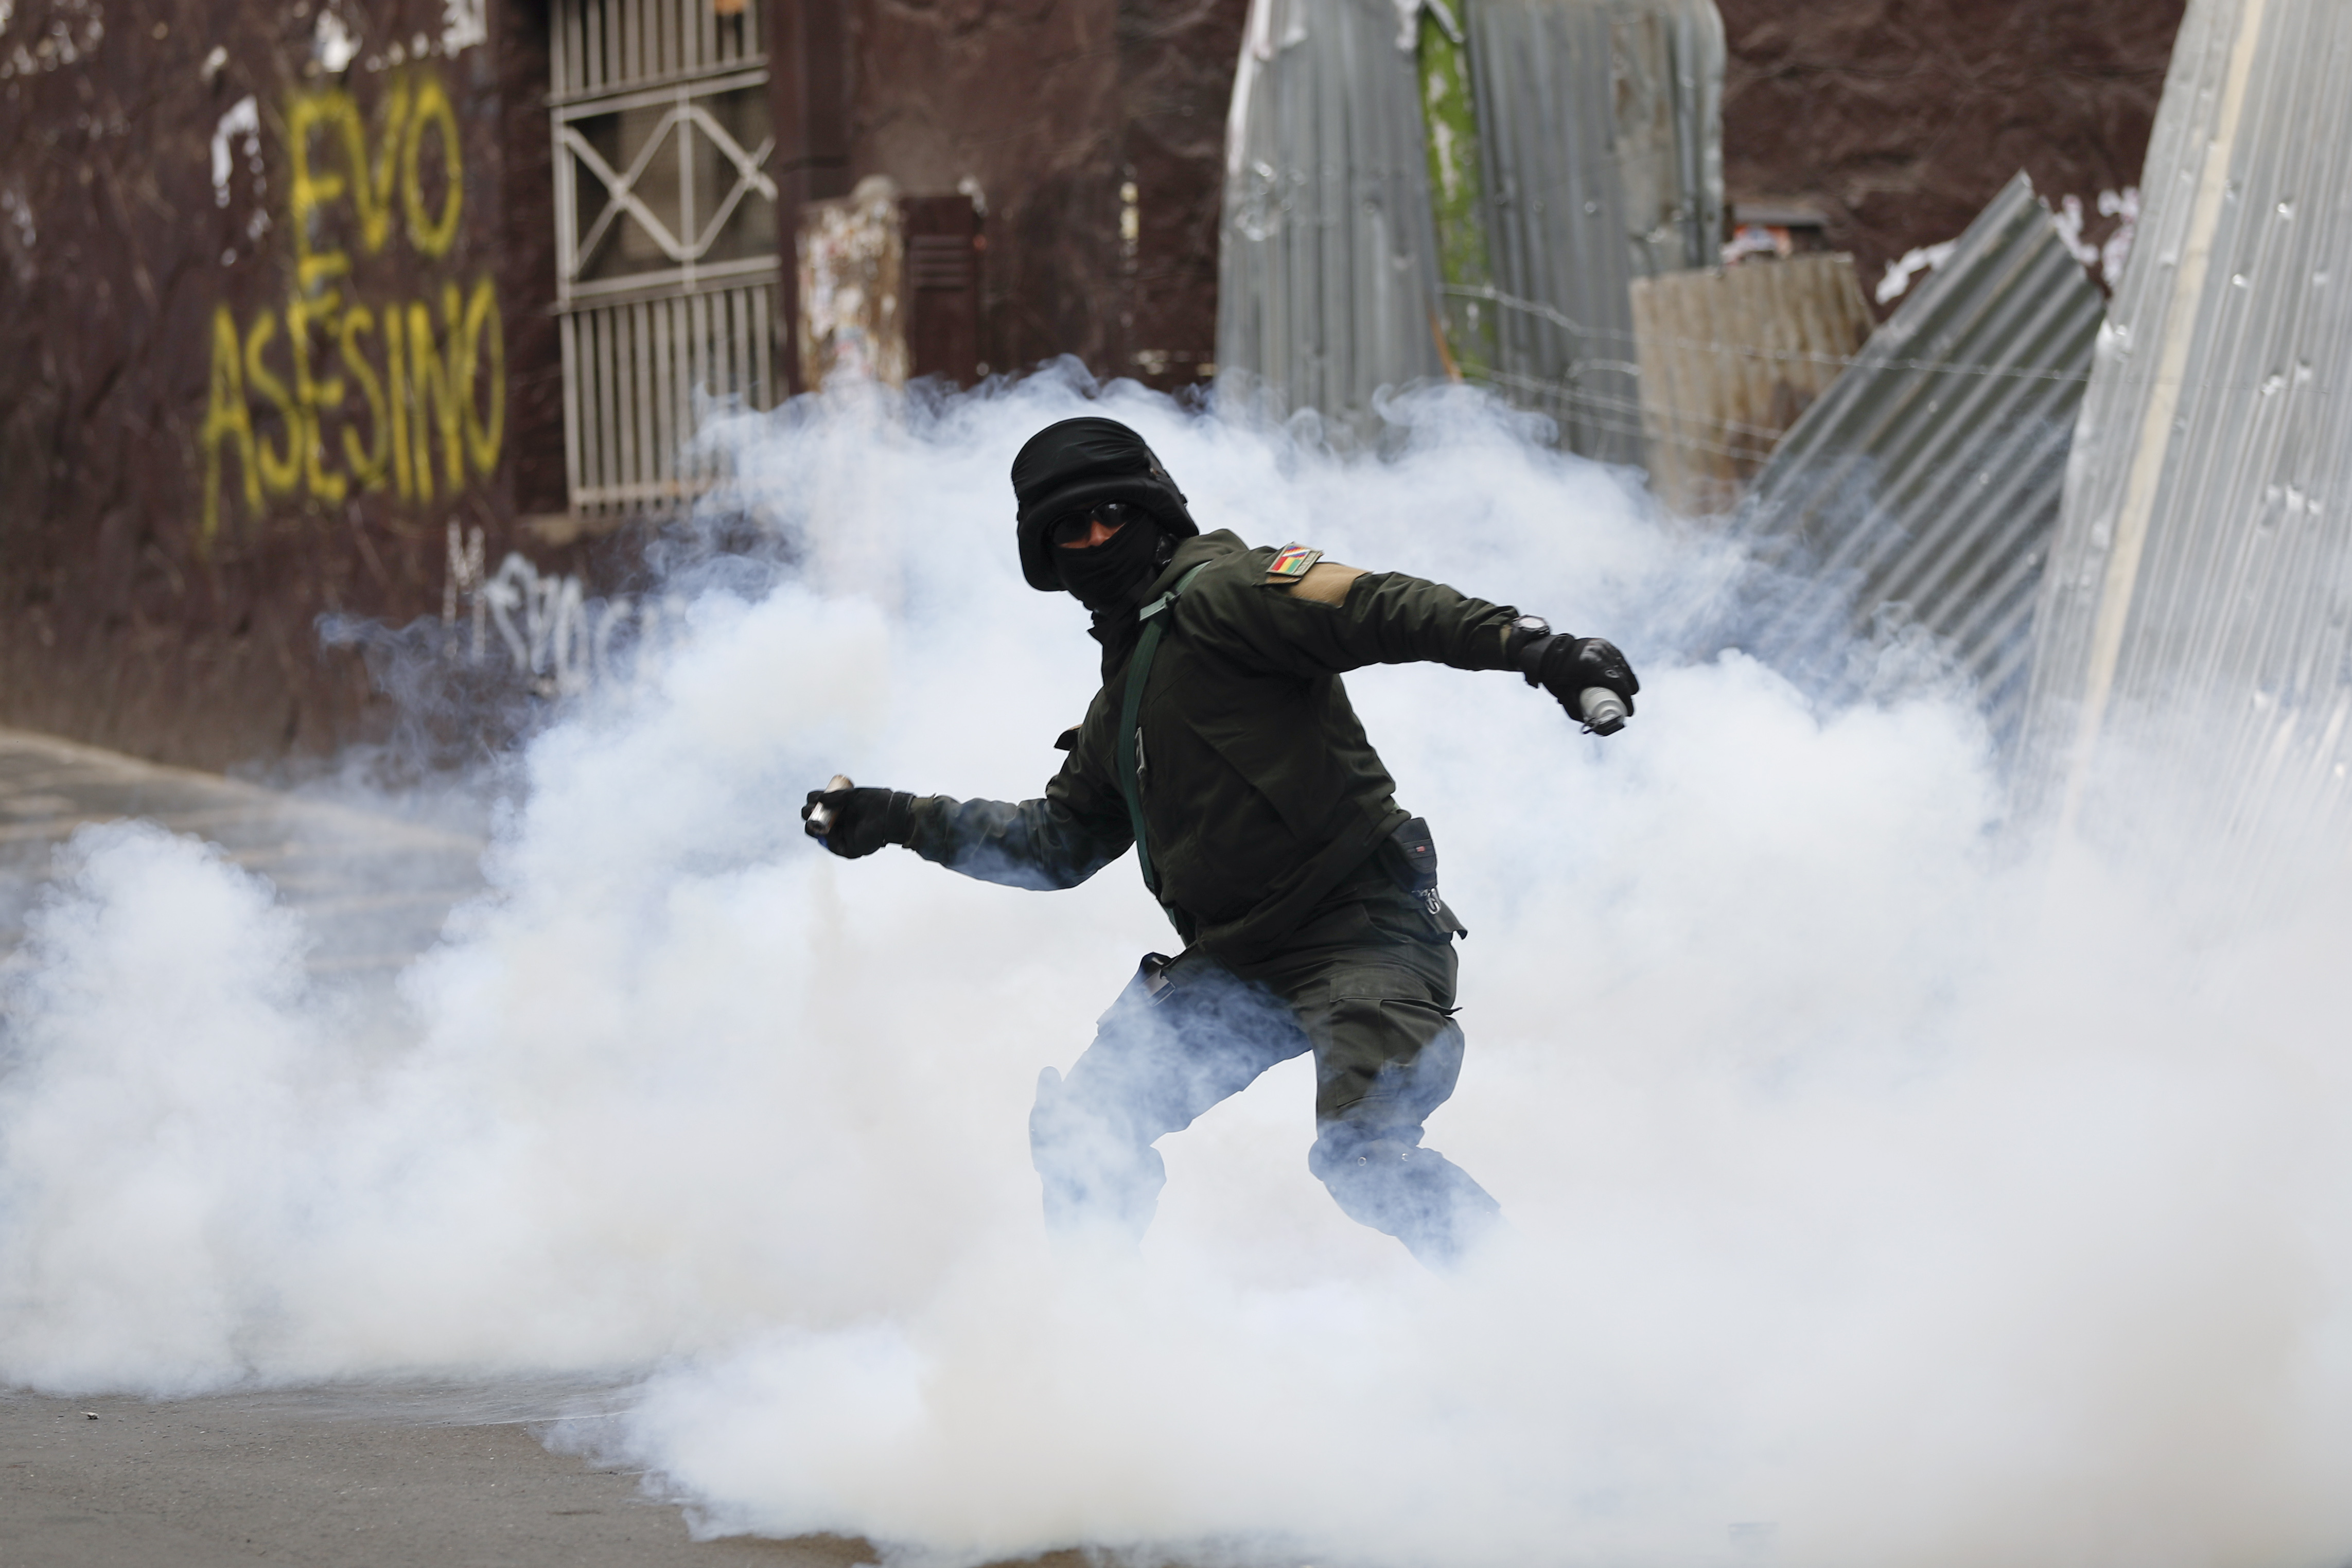 A Bolivian police officer hurls tear gas at backers of former President Evo Morales during clashes, in La Paz, Bolivia, Wednesday, Nov. 13, 2019.